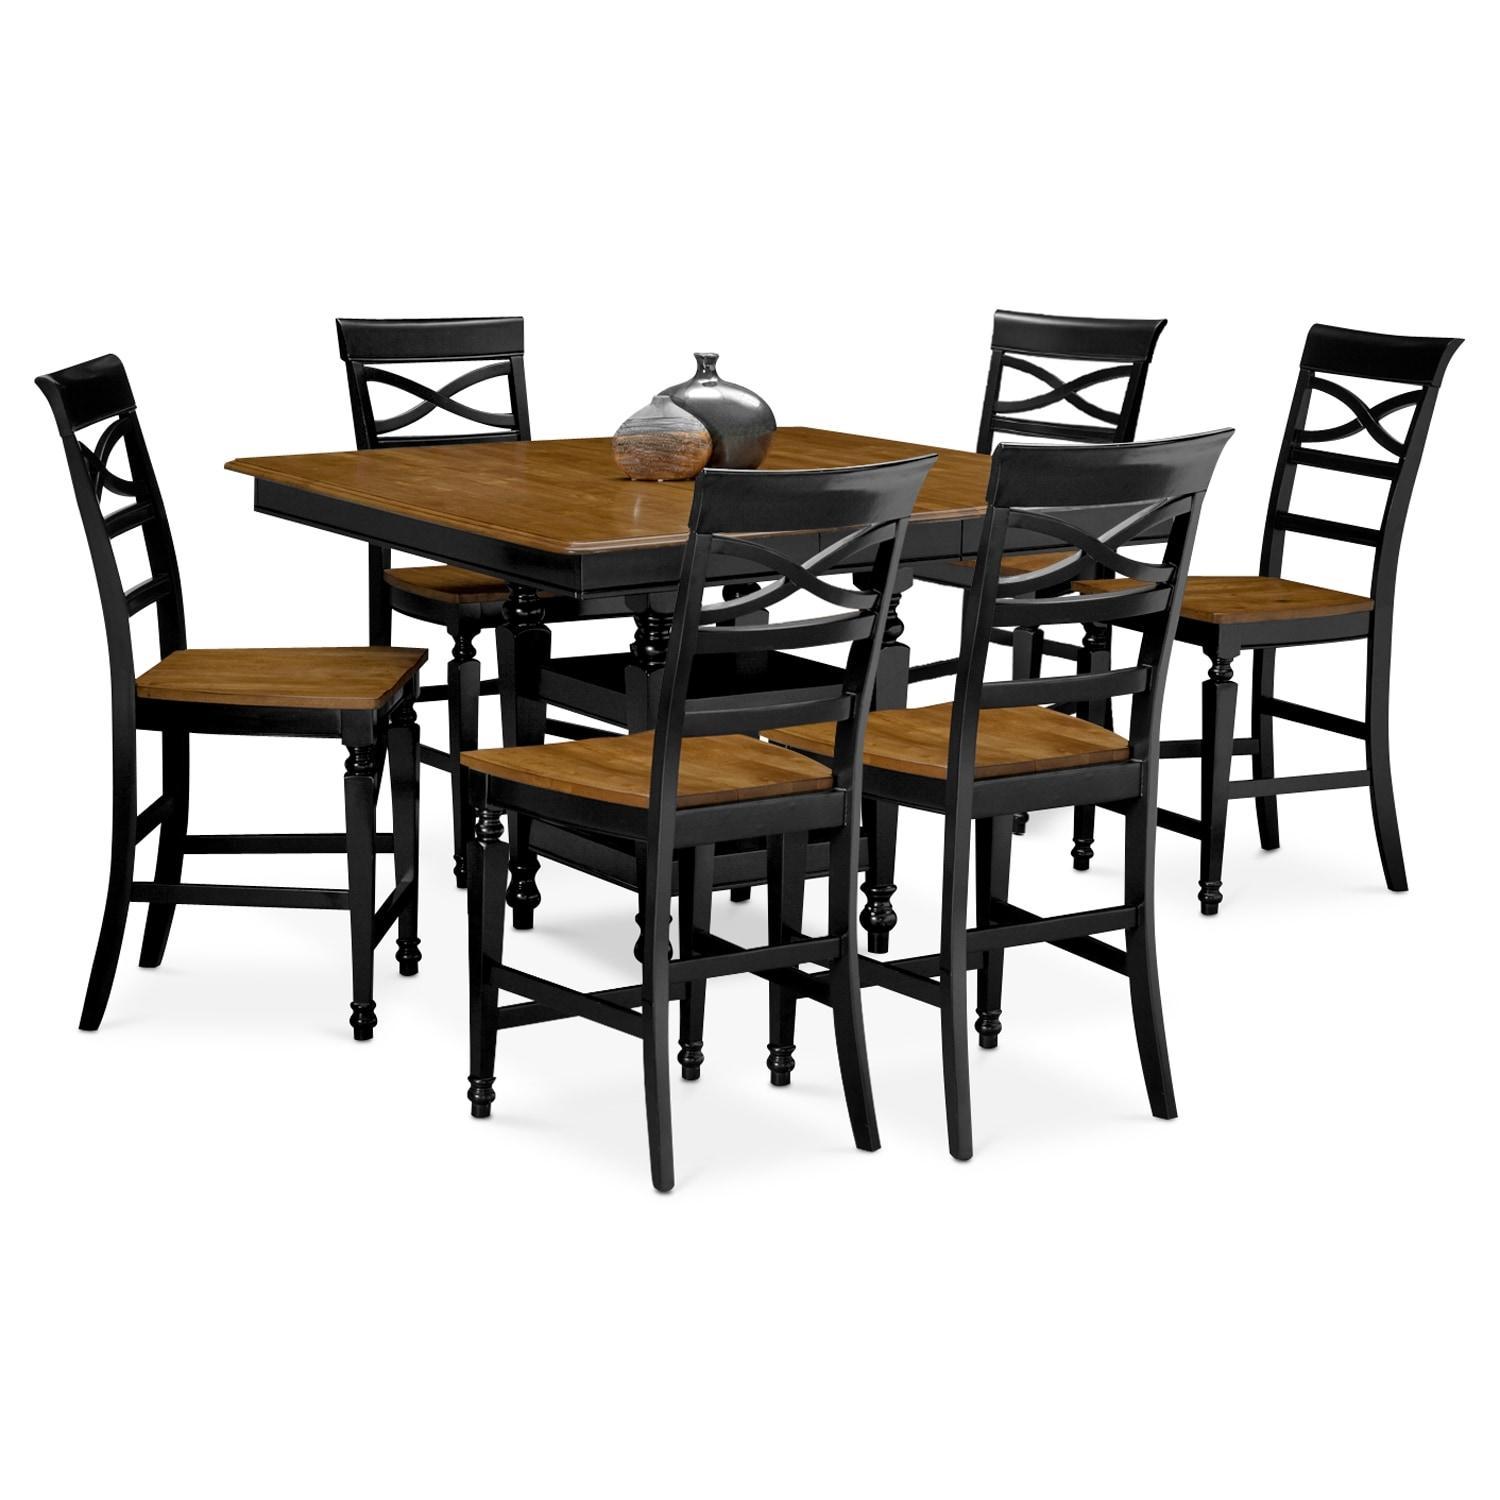 Chesapeake 7 Pc. Counter-Height Dining Room